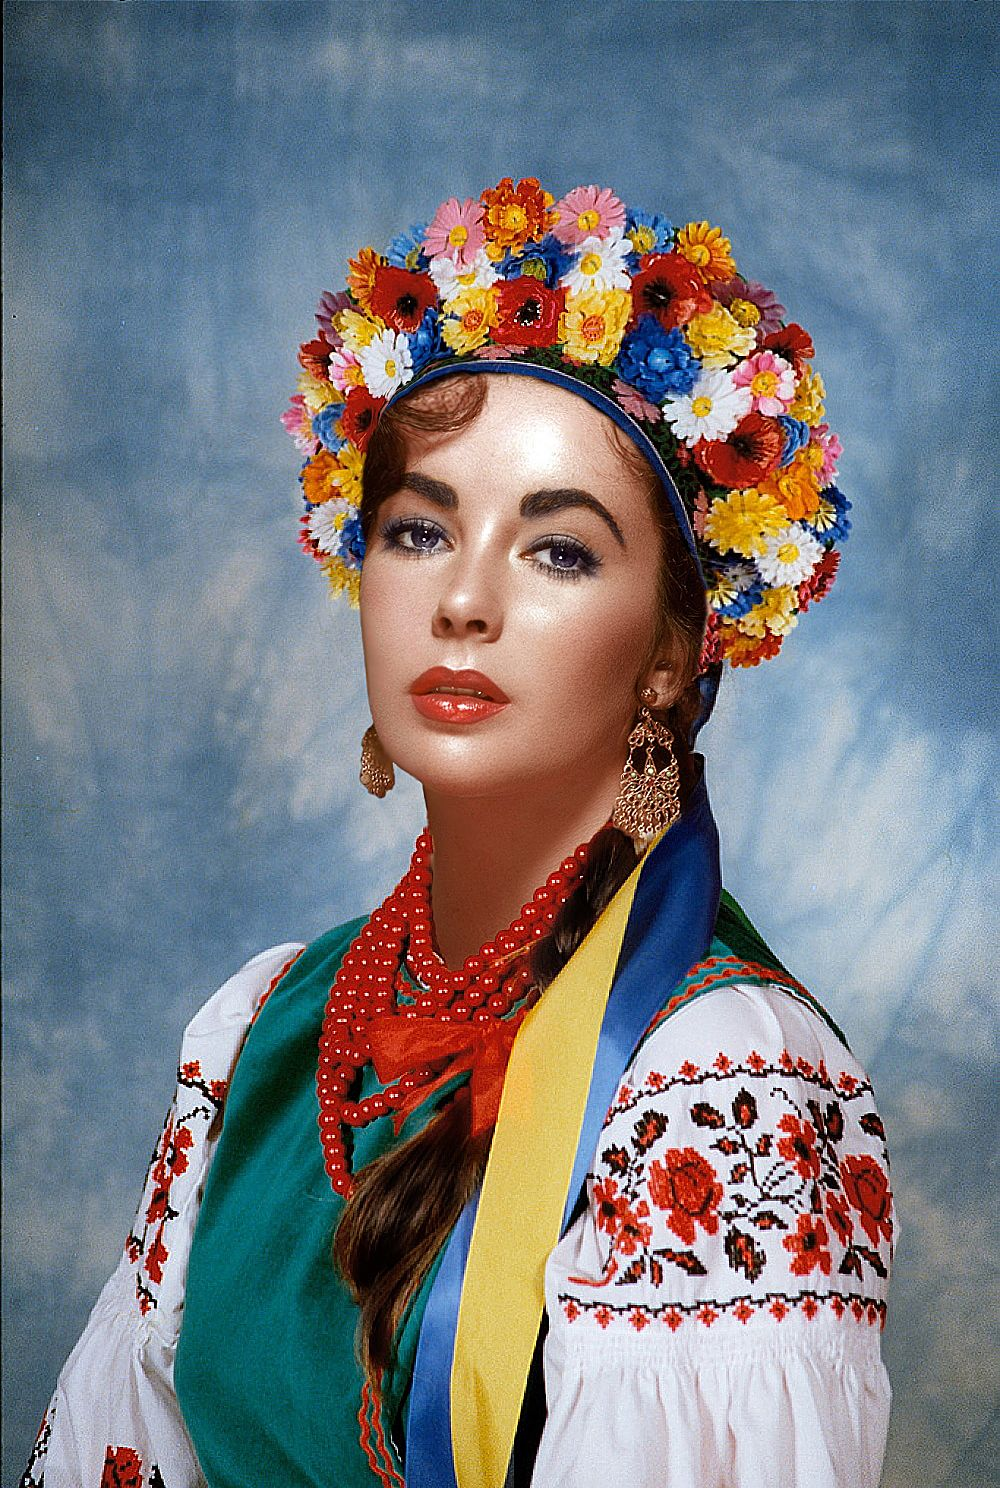 Fan Art Of Ukrainian Traditional Dress For Fans Elizabeth Taylor